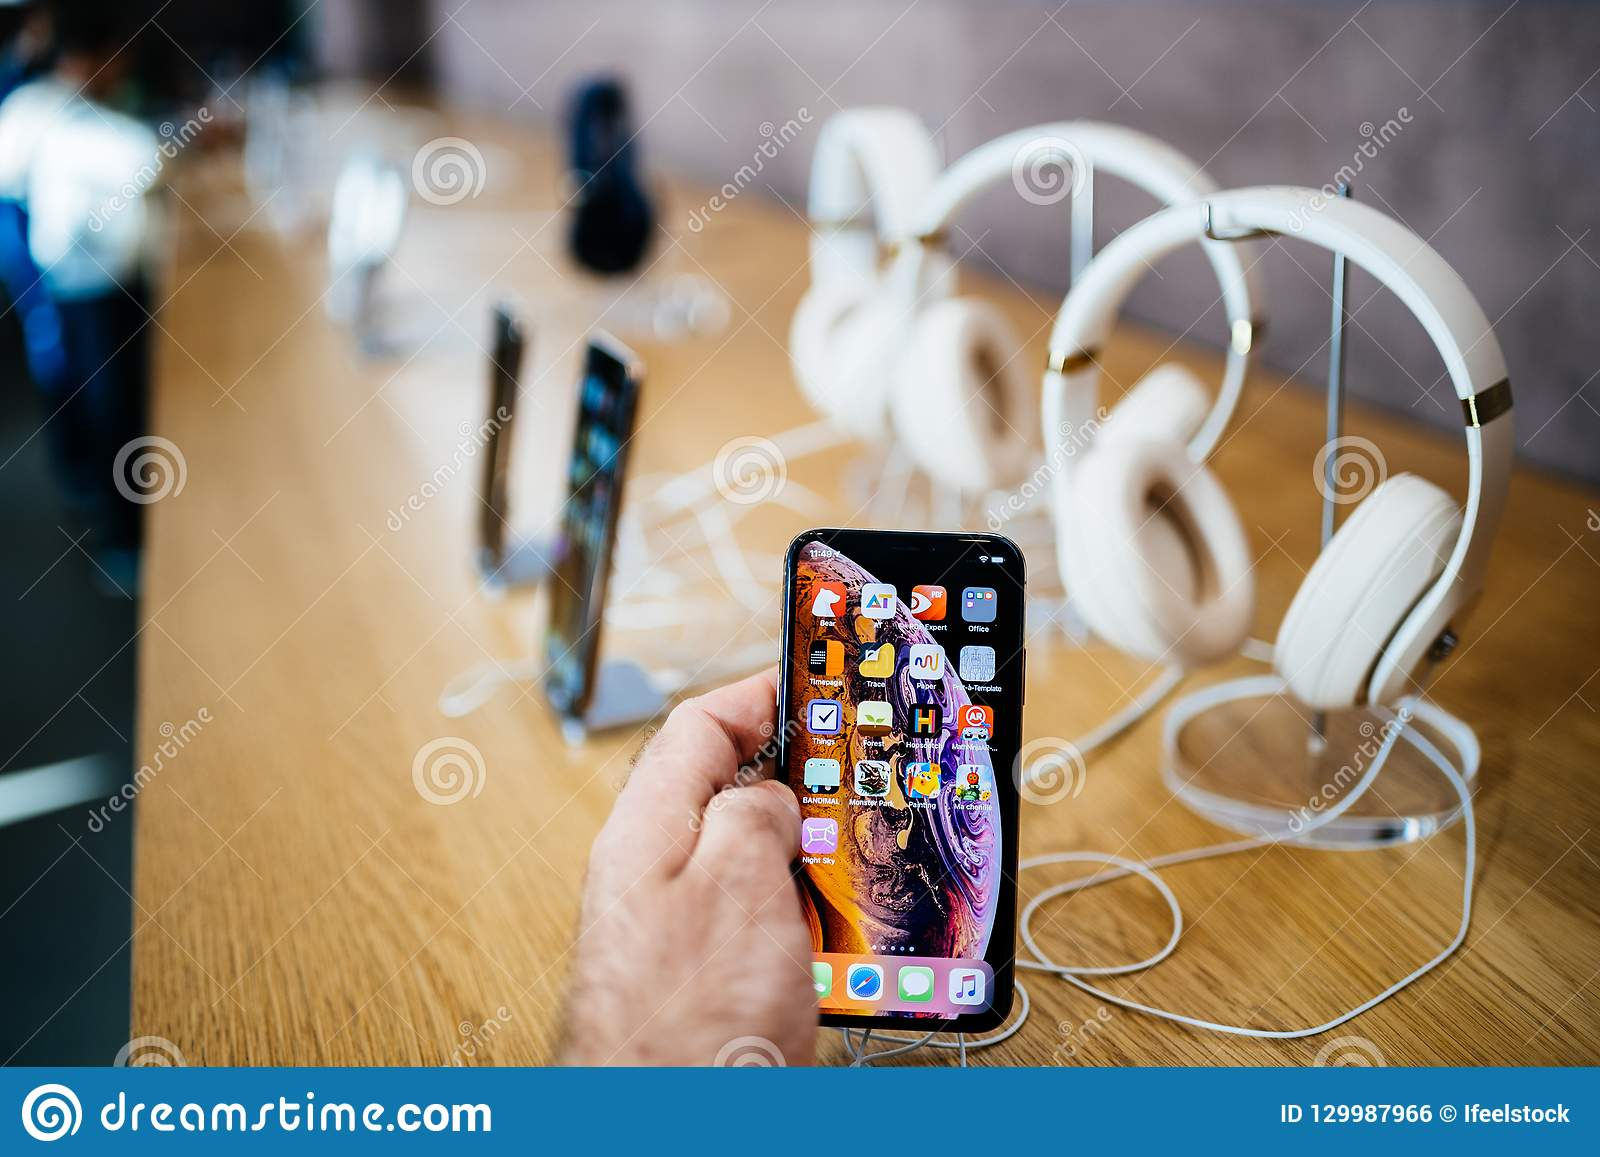 Hand Smartphone With Apple Music And Headphones Iphone Editorial Photo Image Of Launch Bestof 129987966